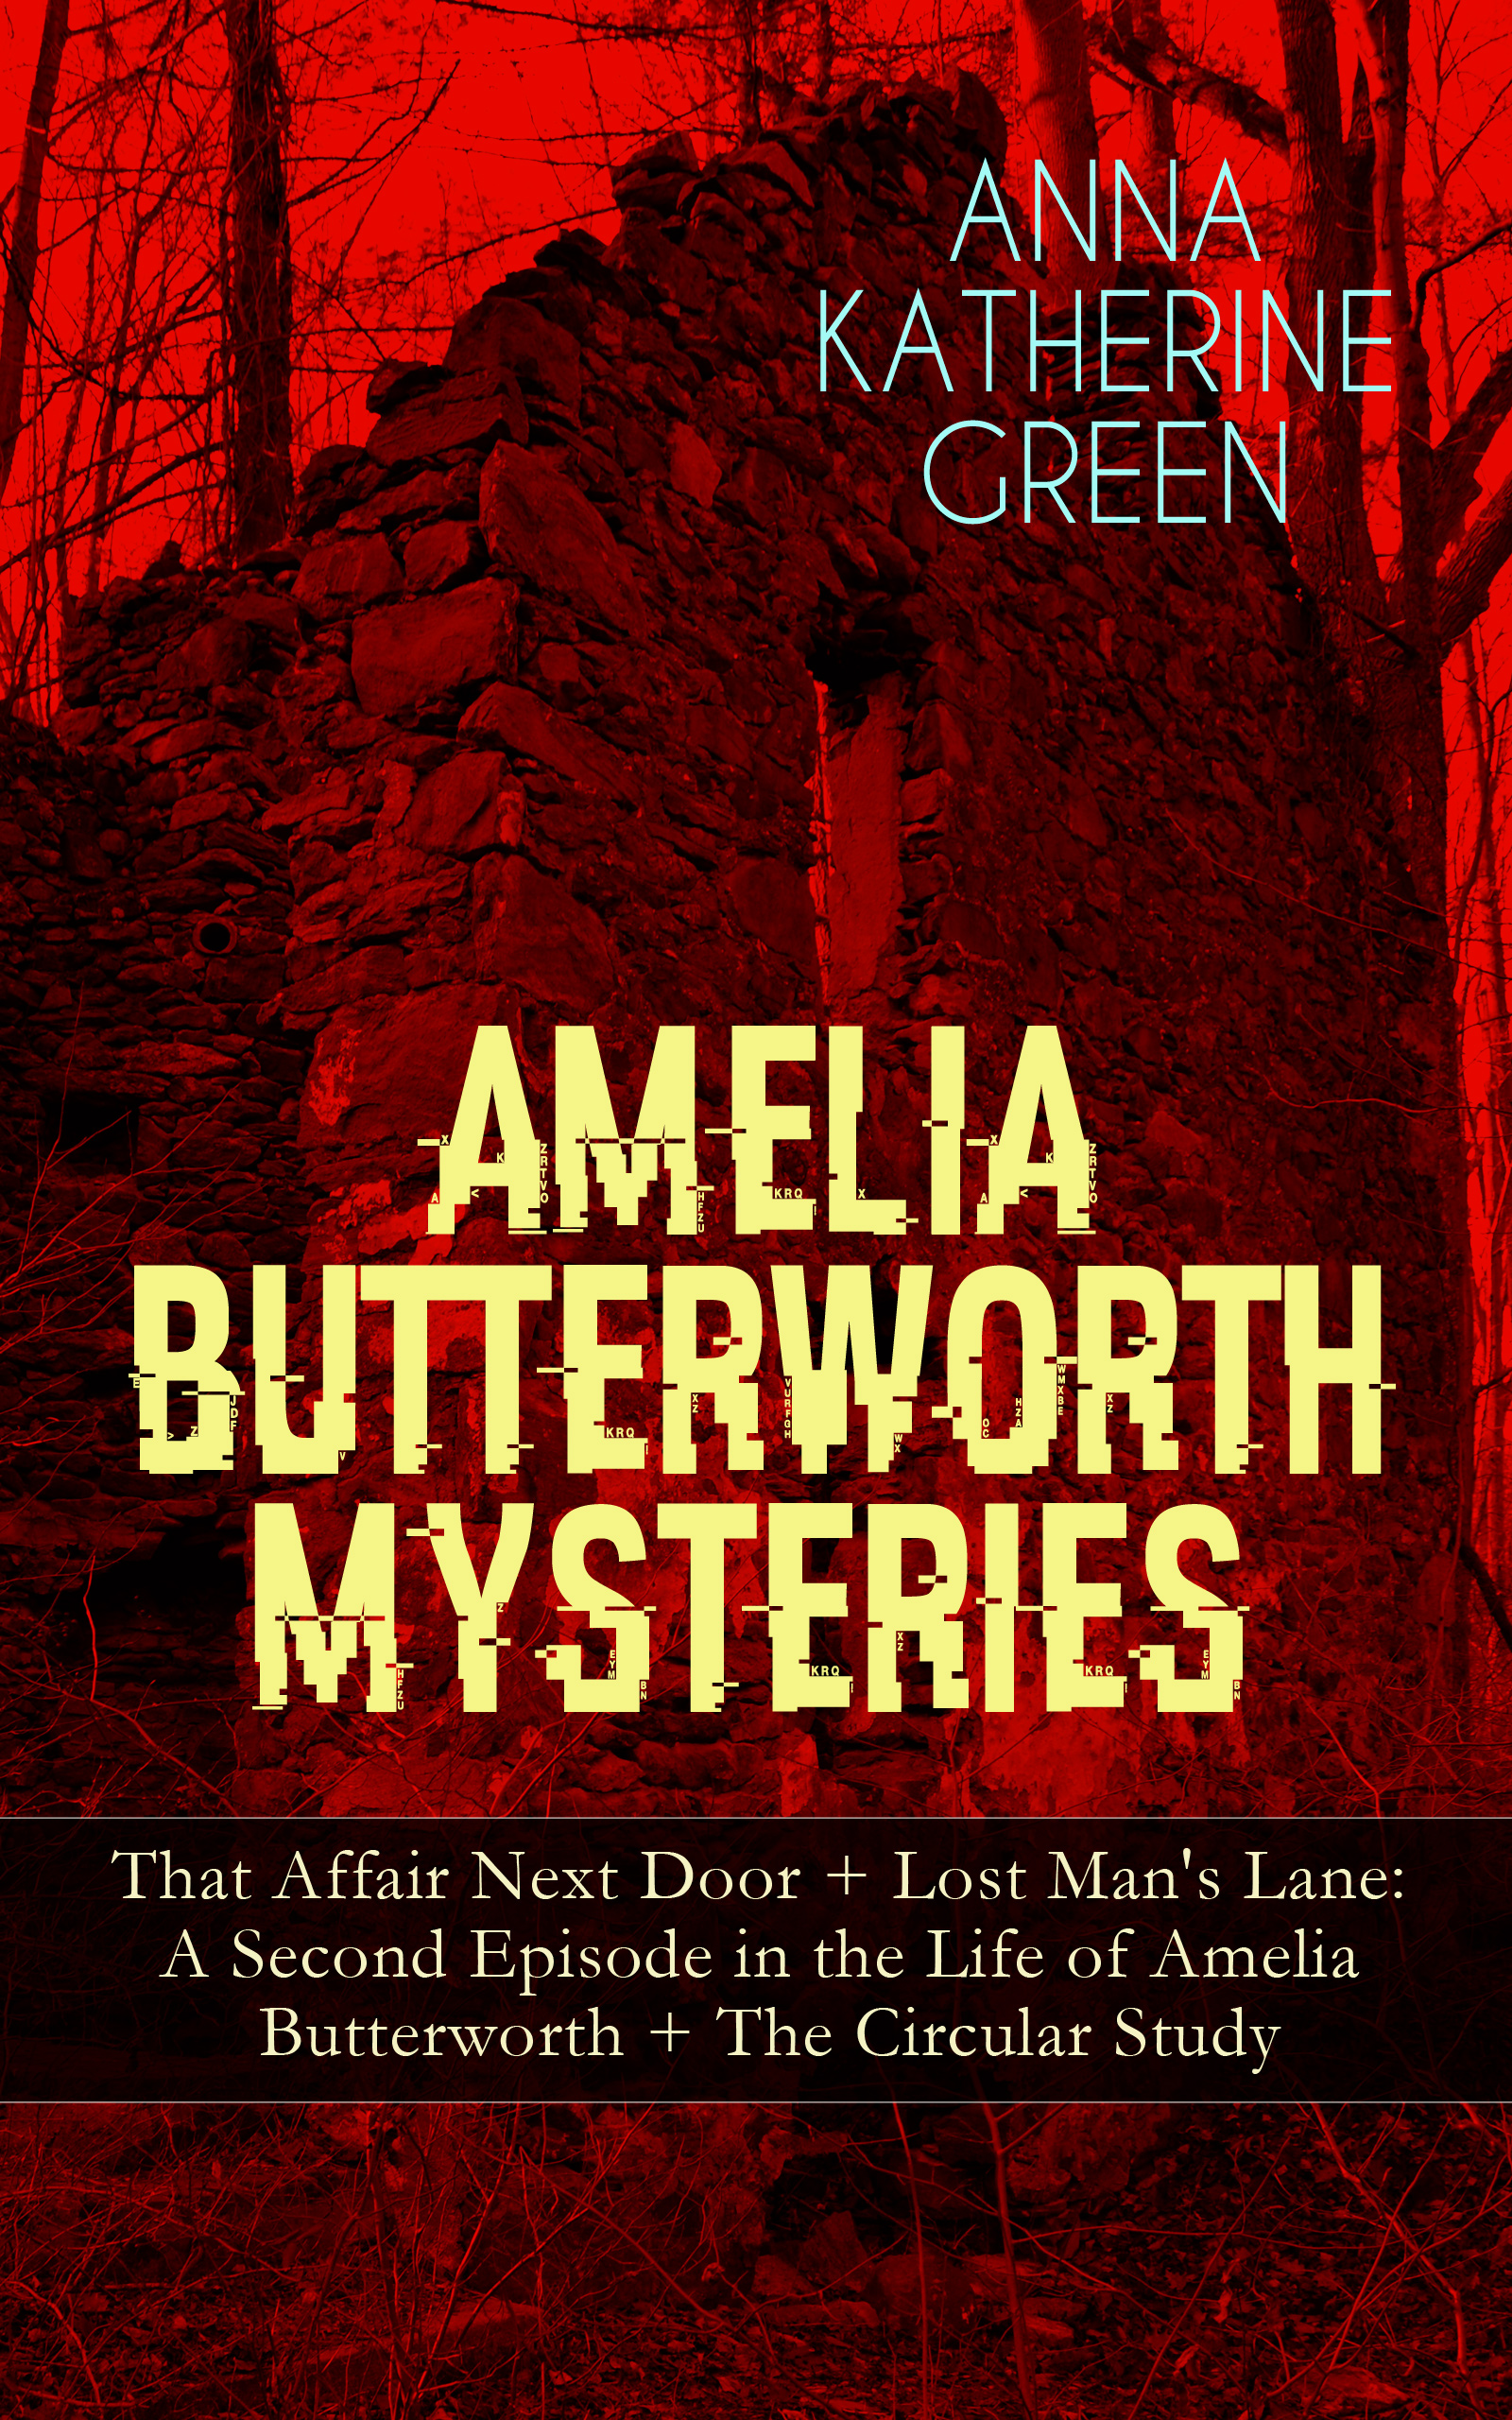 Anna Katharine Green AMELIA BUTTERWORTH MYSTERIES: That Affair Next Door + Lost Man's Lane: A Second Episode in the Life of Amelia Butterworth + The Circular Study missy tippens the guy next door